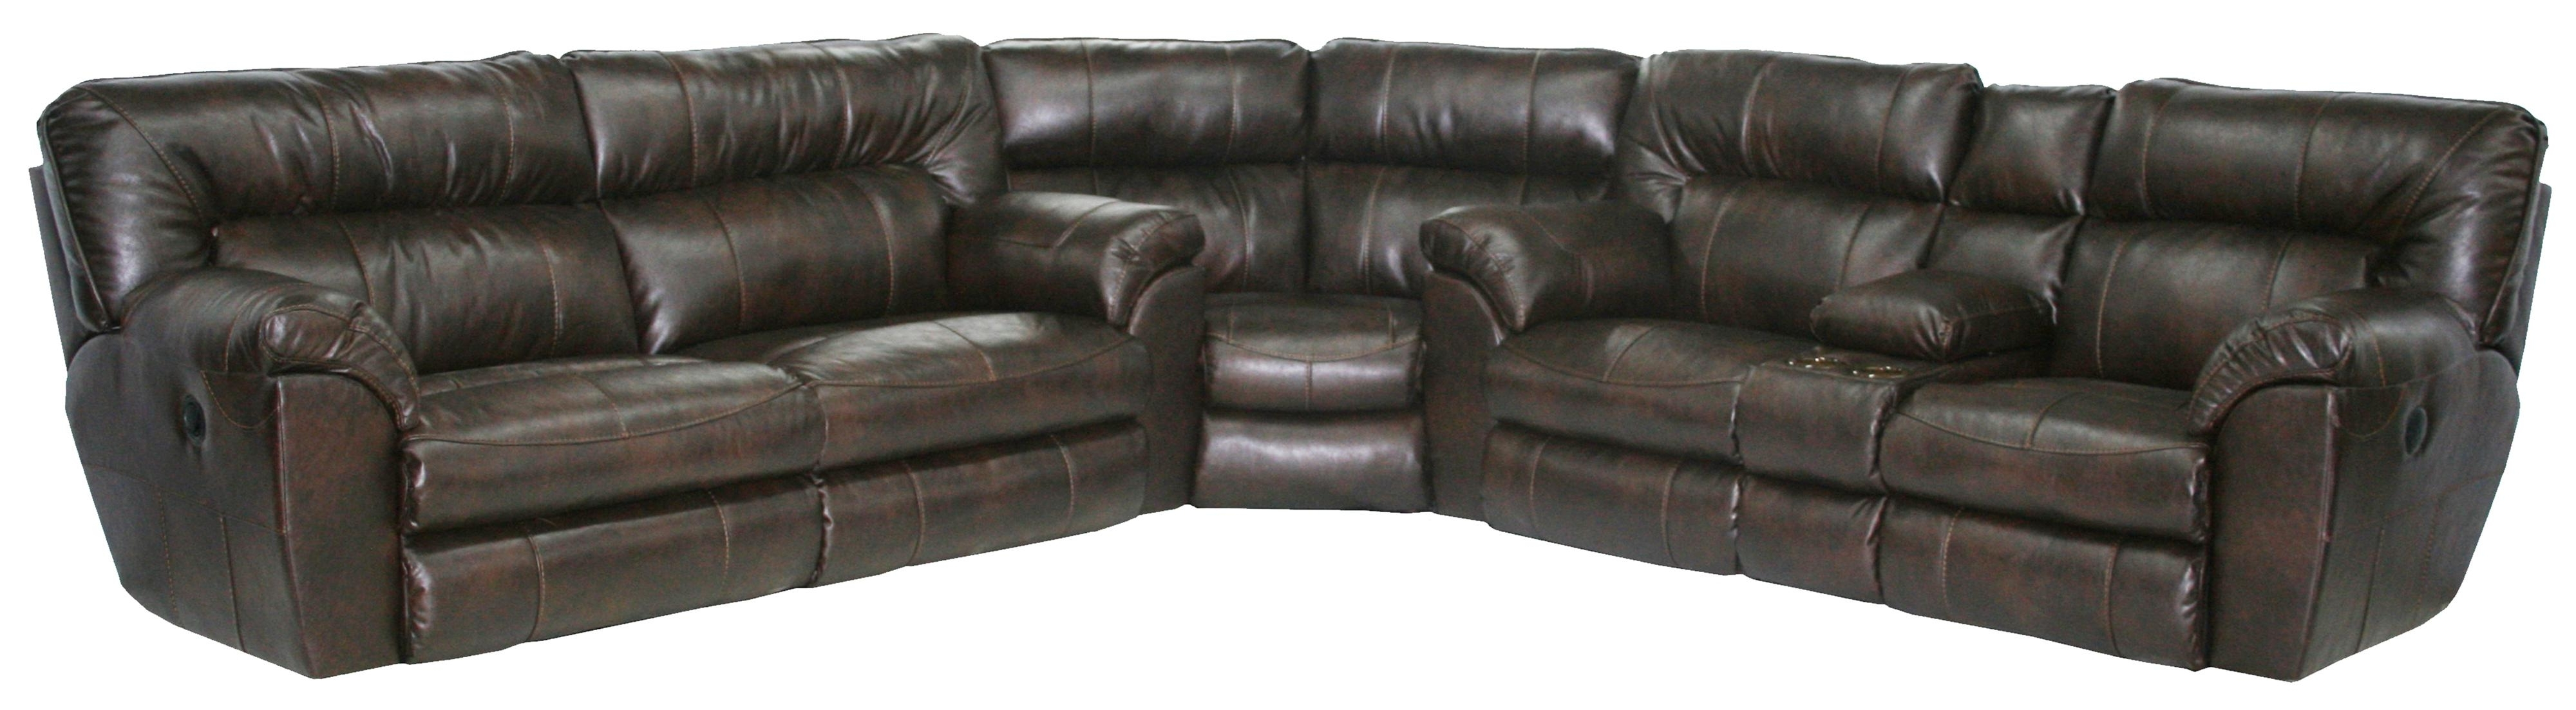 Power Reclining Sectional Sofa With Left Consolecatnapper With Regard To Latest Sectional Sofas With Consoles (View 7 of 15)